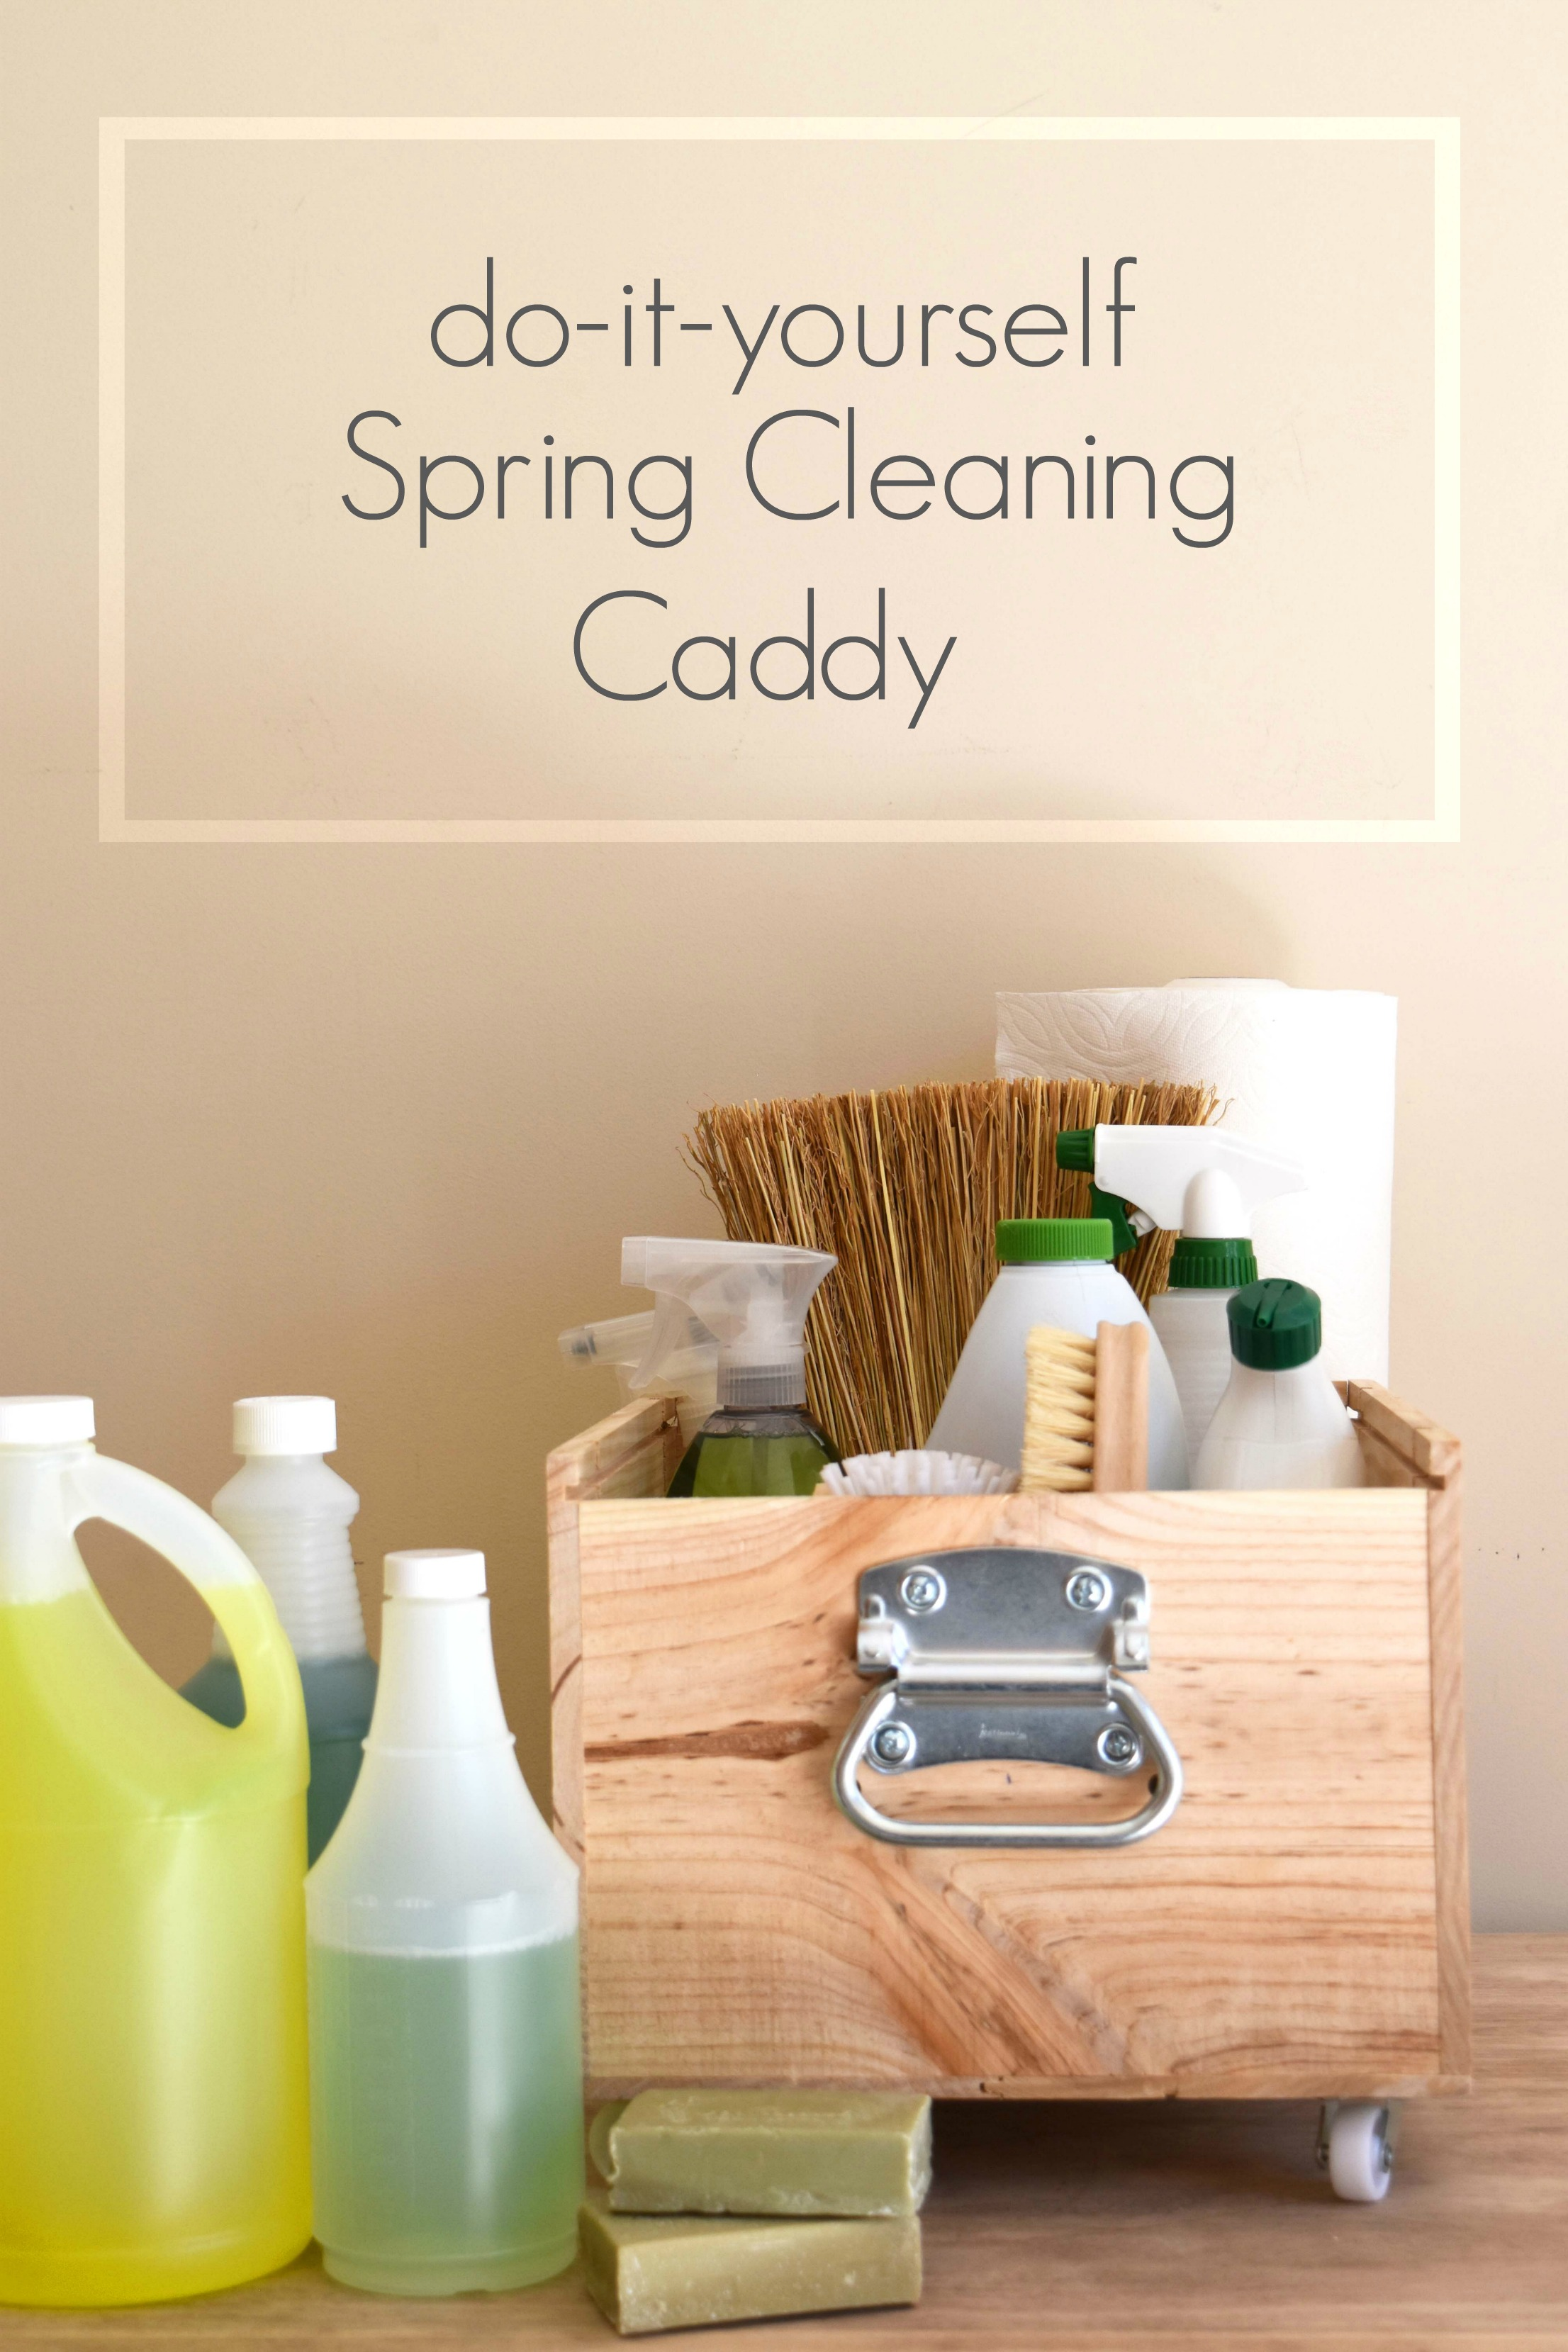 DIY Cleaning Caddy – Perfect for Spring Cleaning!